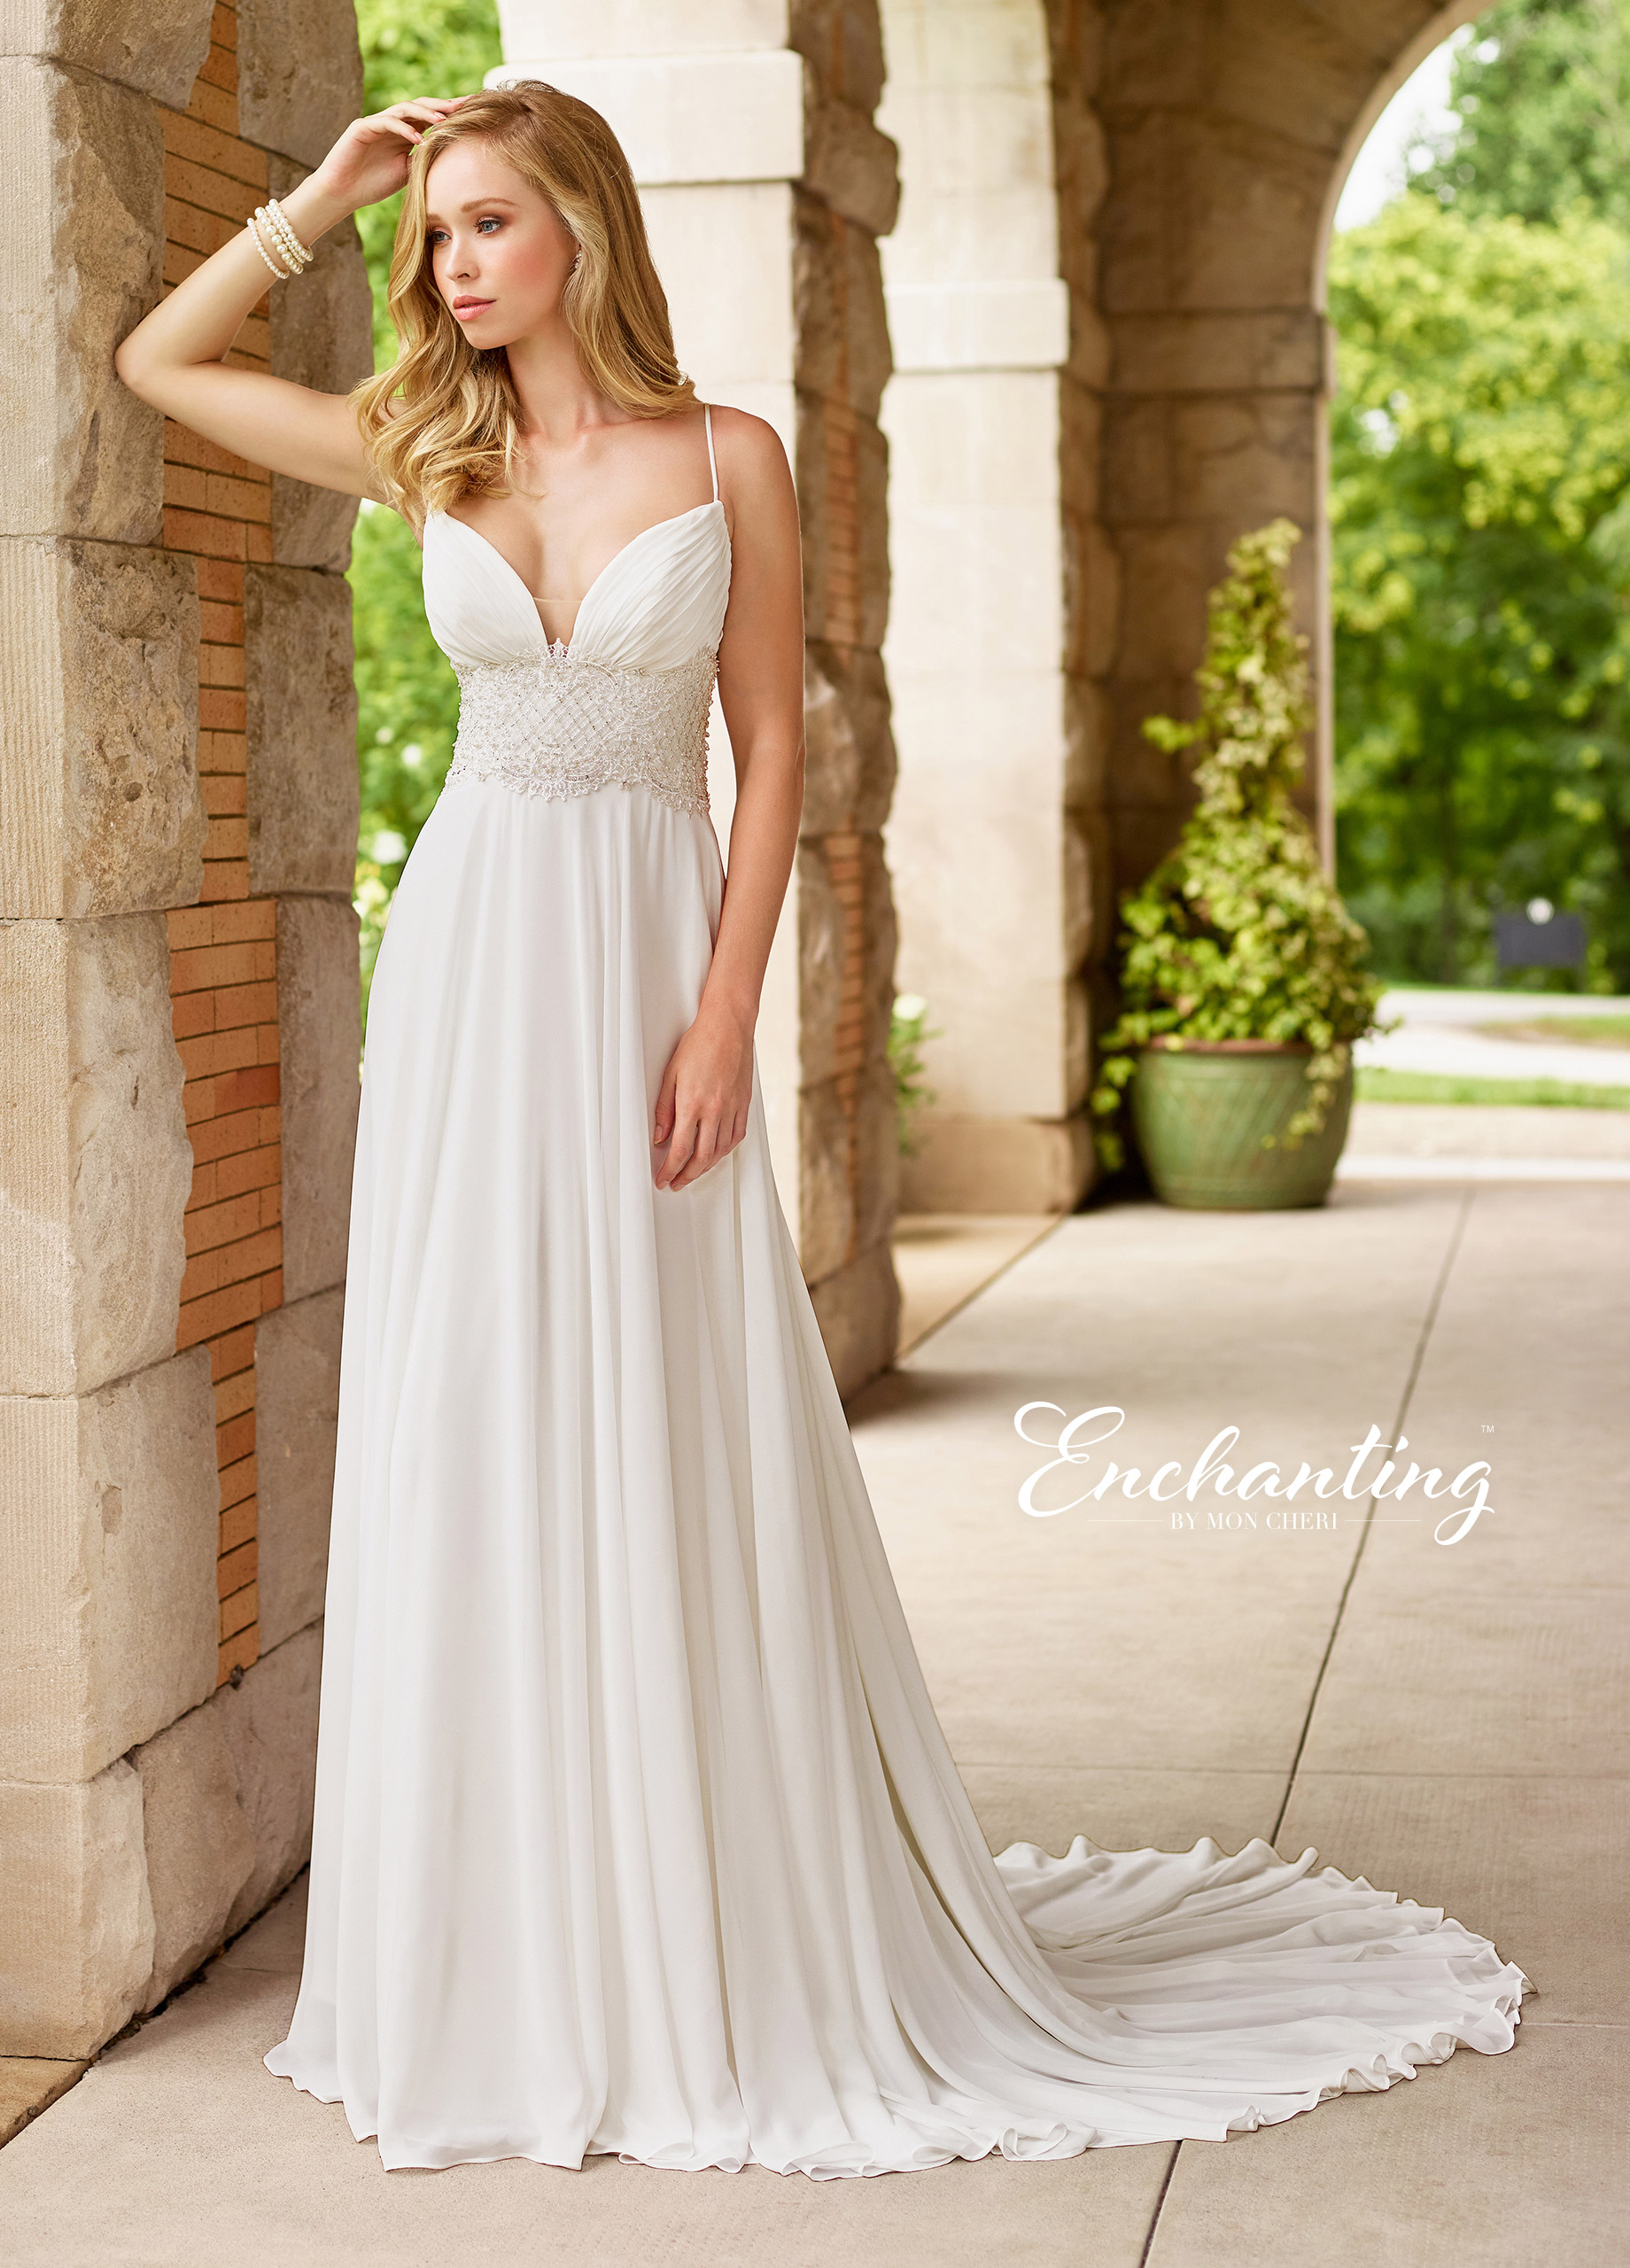 beach-wedding-dress-Enchanting-118146_A